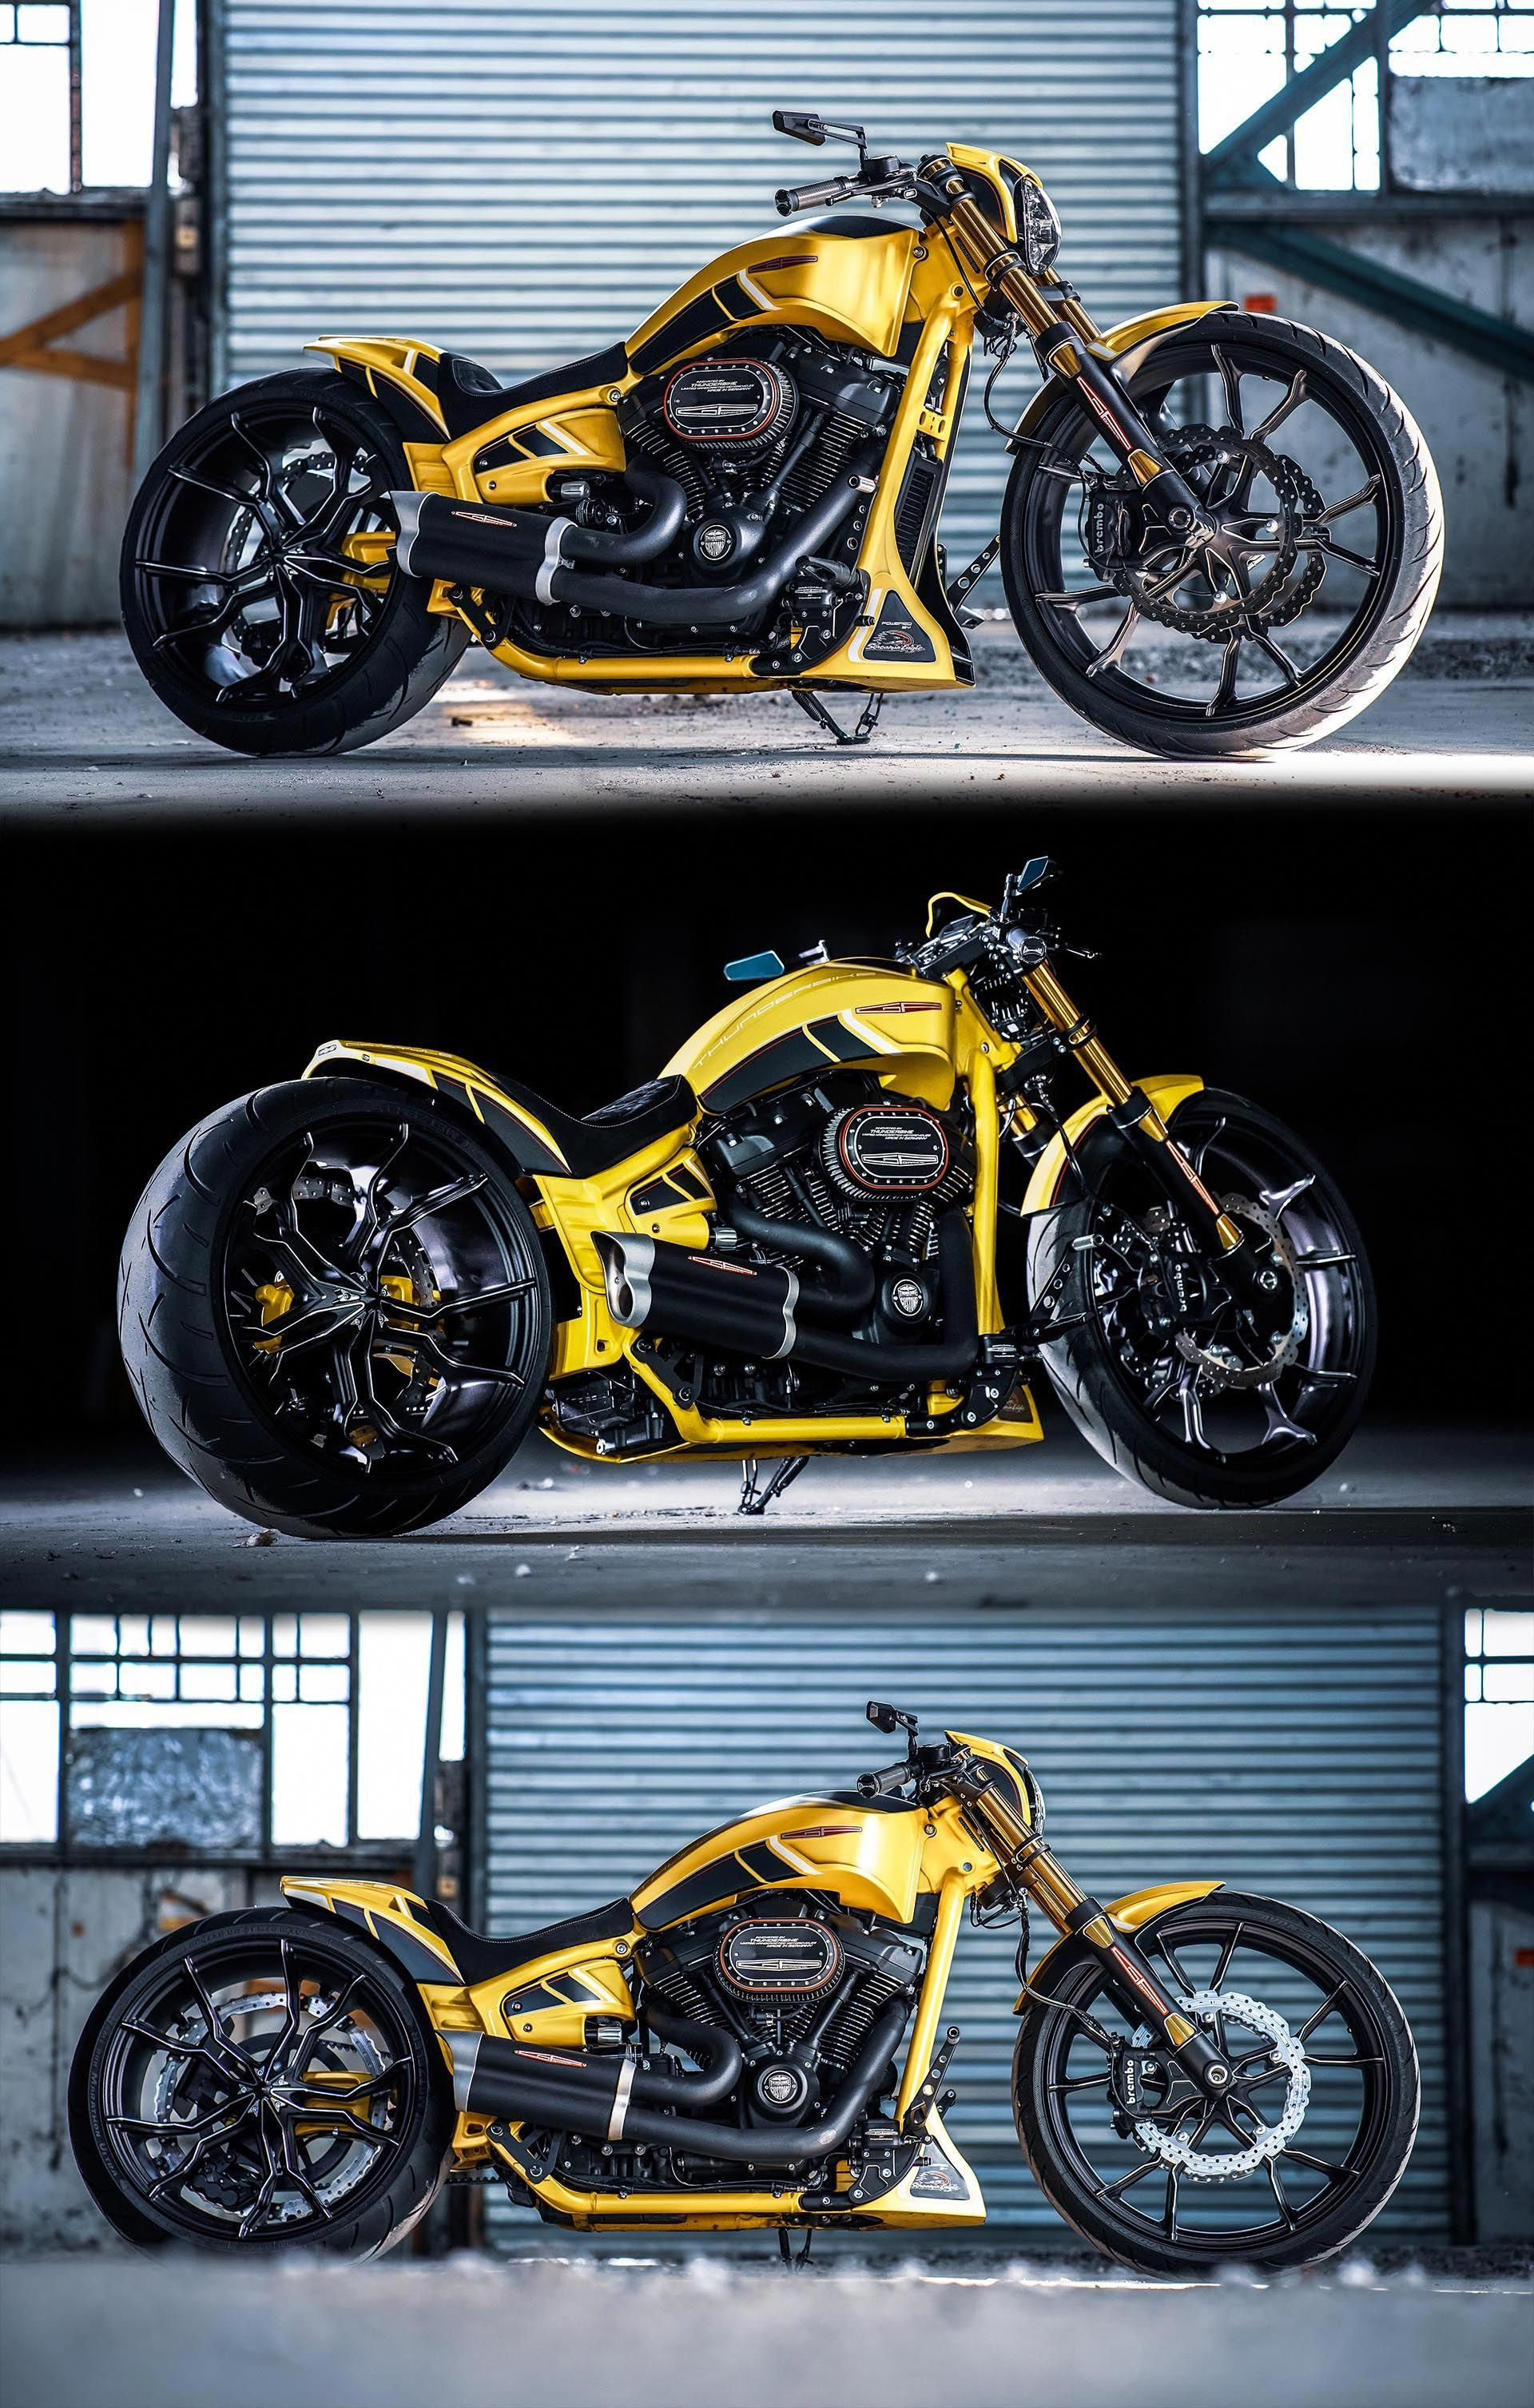 Thunderbike Silverstone Harley Davidson Softail Breakout Brought To You By Smart E Harleydavidsonsoftail Softail Harley Davidson Harley Davidson Bikes